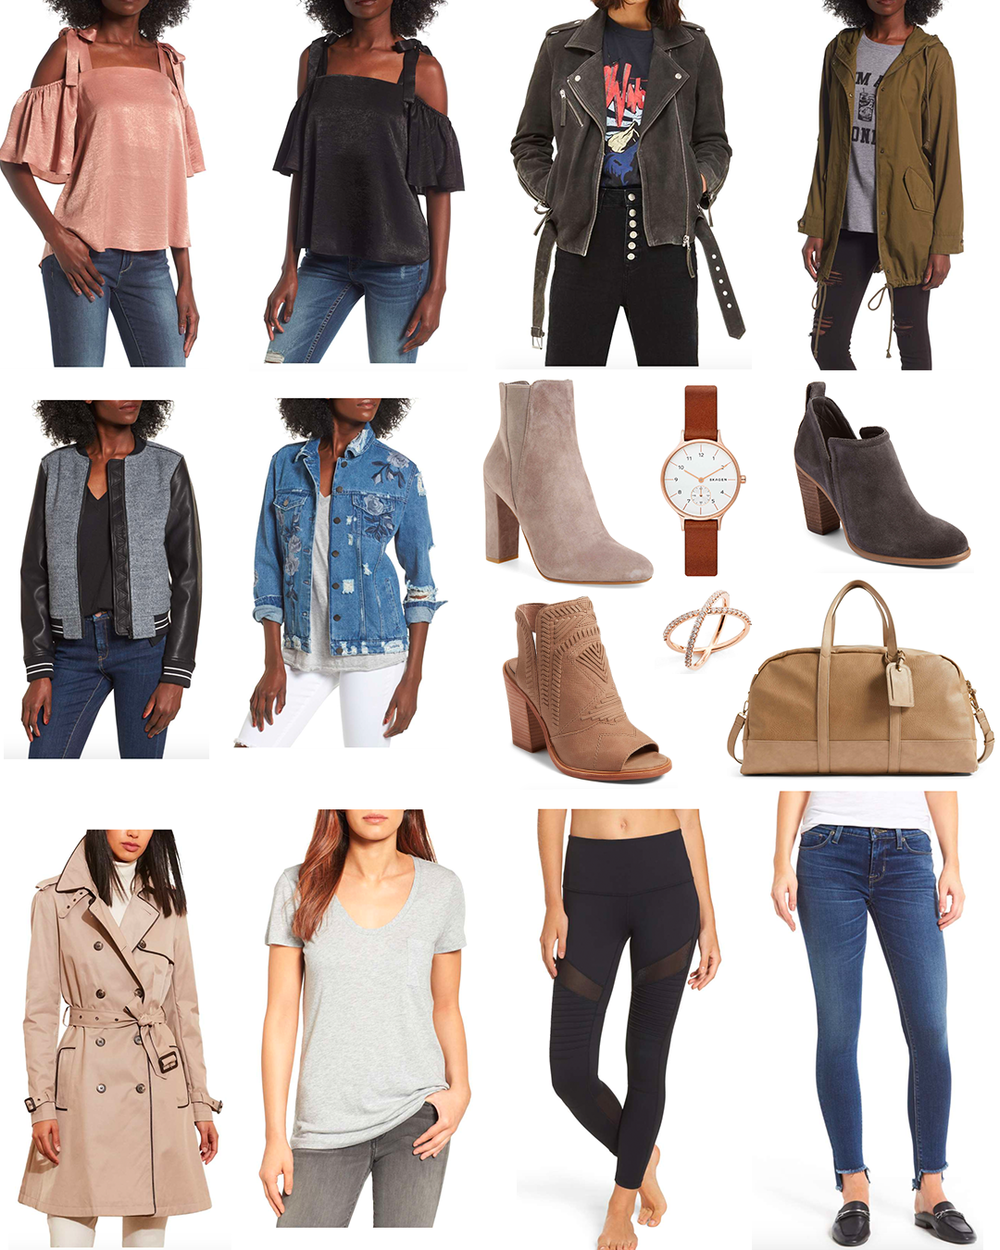 Nordstrom Anniversary Sale! - Last chance to shop!